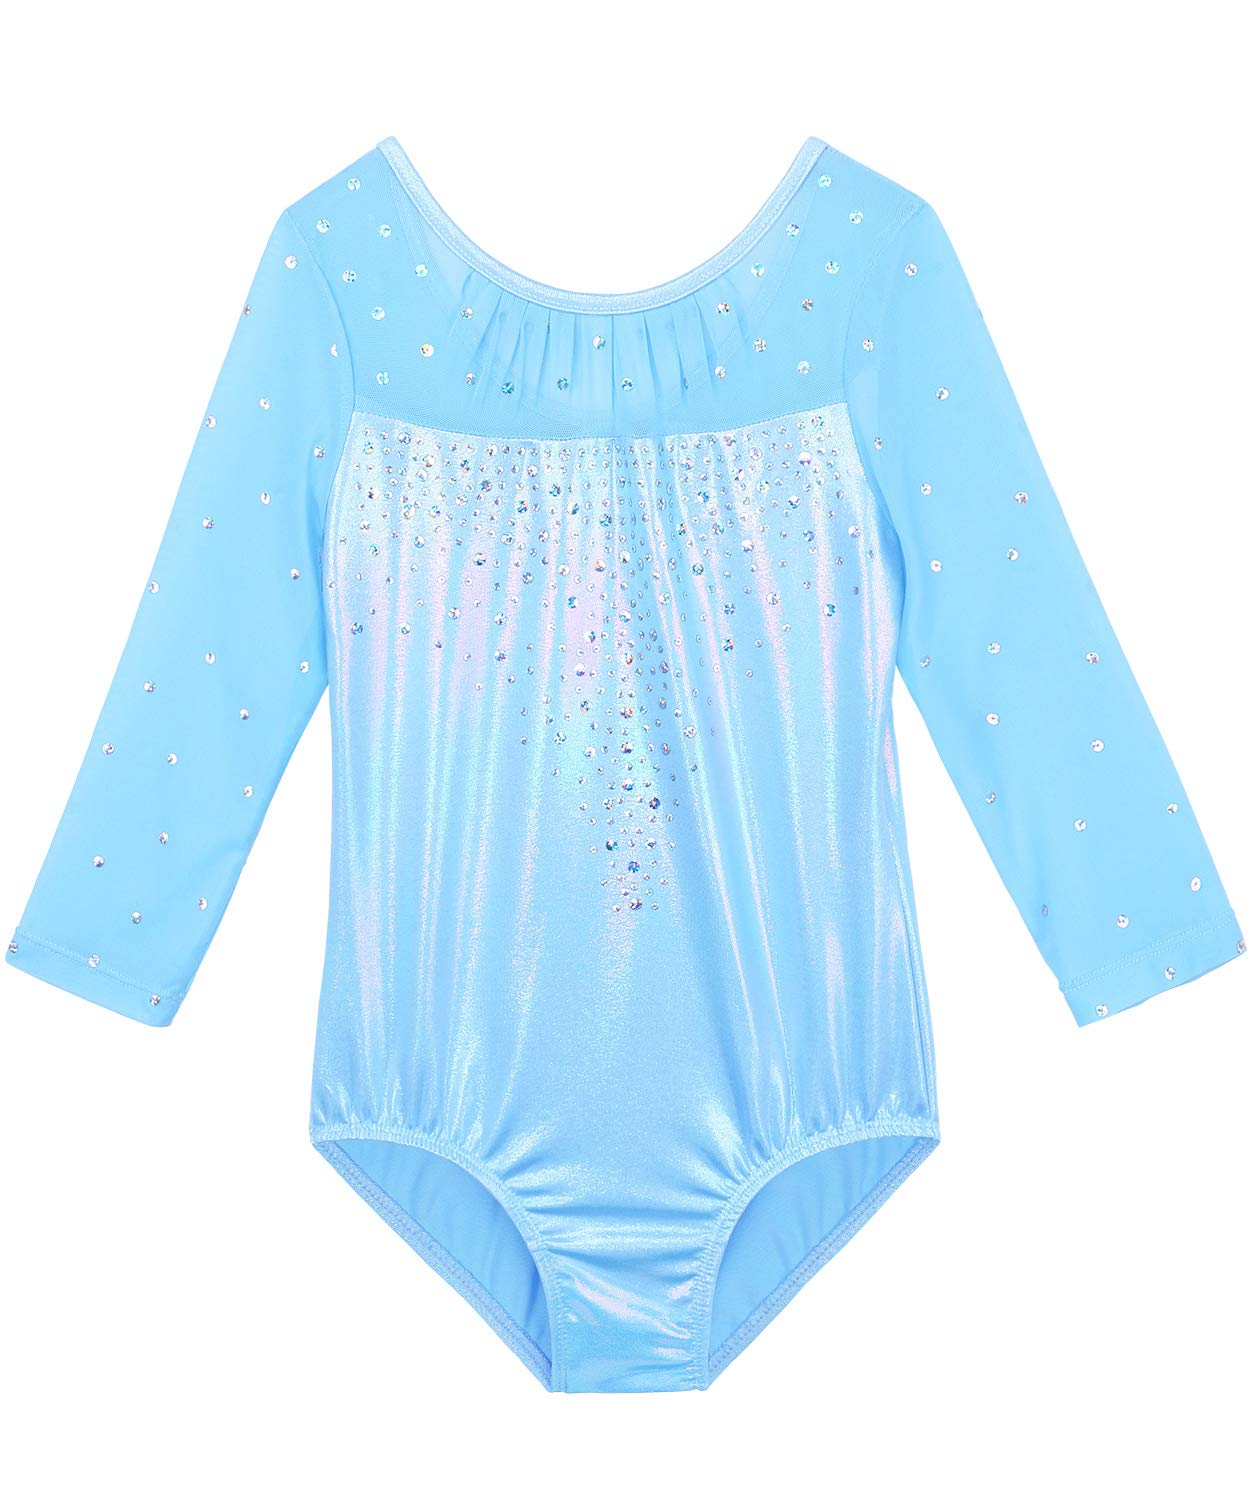 BAOHULU Girls Gymnastics Leotards One-Piece 3-14 Years Practice Outfit